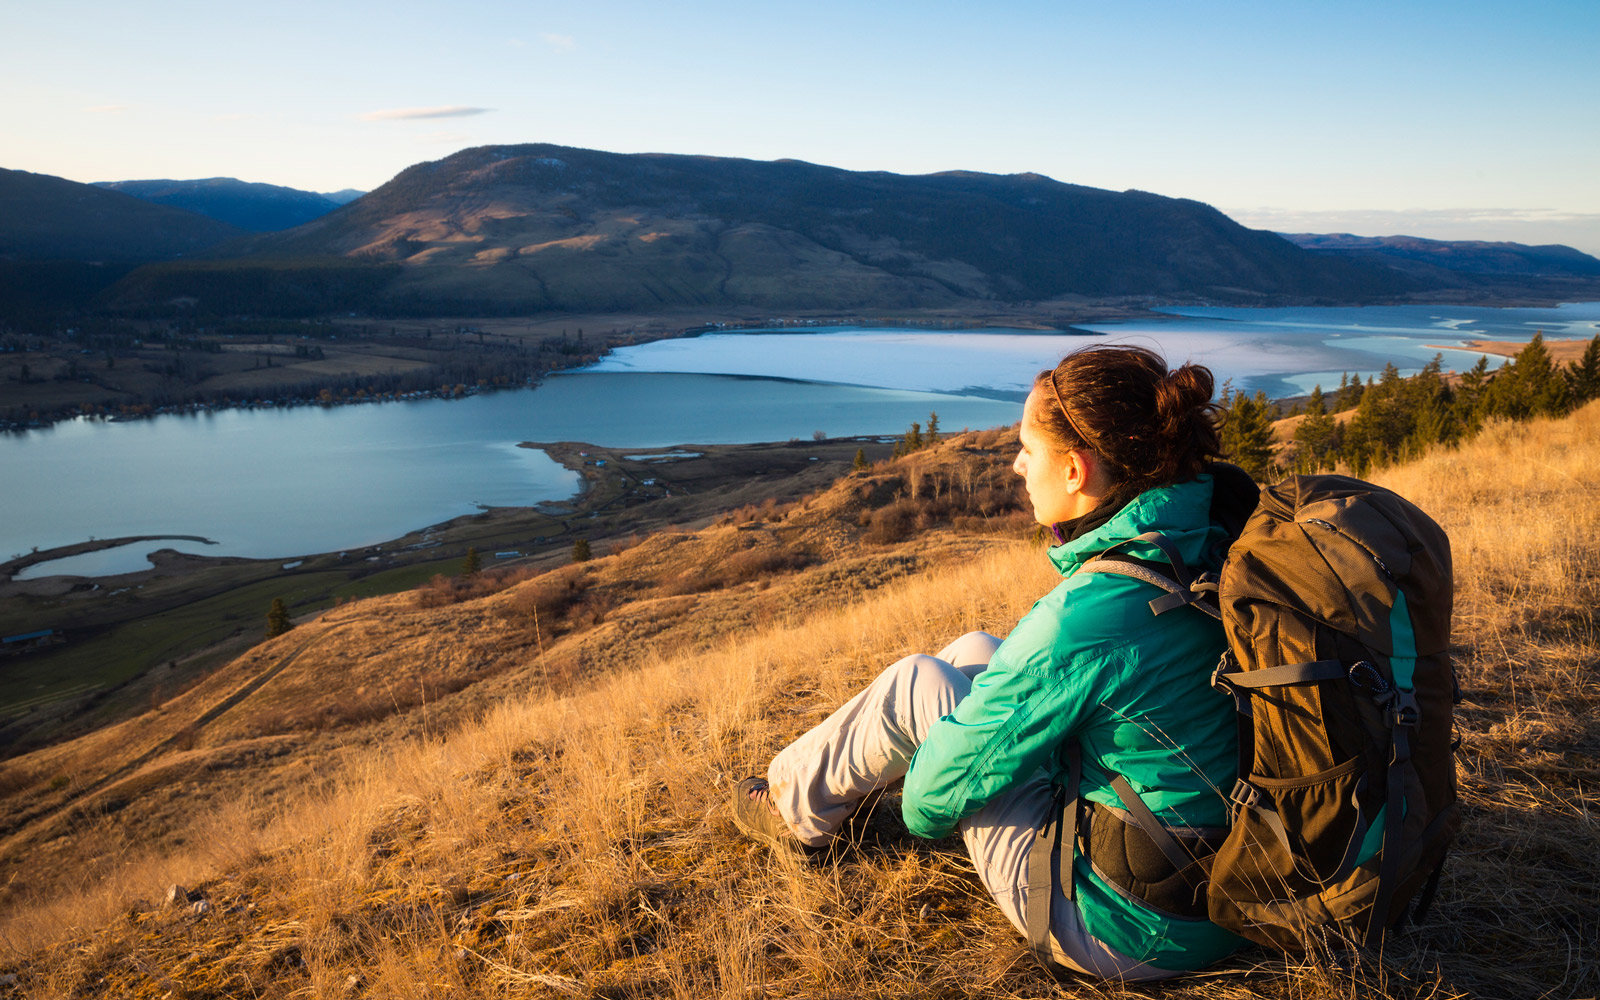 Female hiker enjoying a winter sunset in the Okanagan Valley, British Columbia, Canada